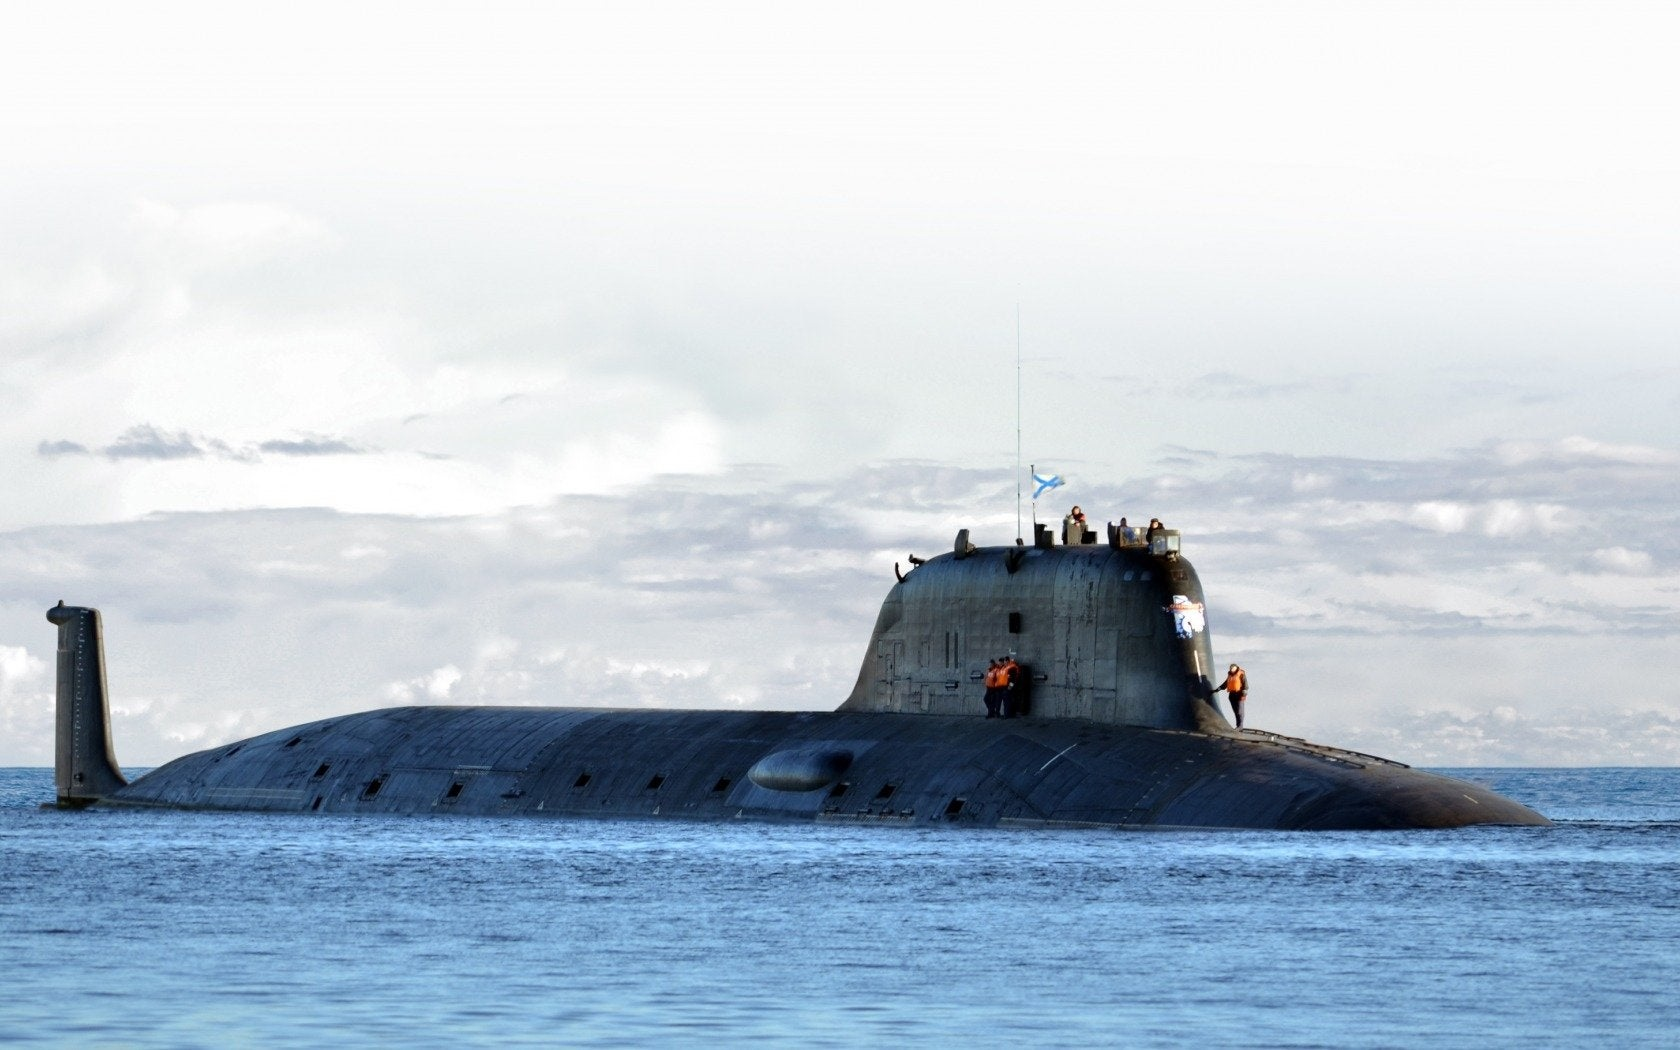 Is Russia's New Stealth Submarine Project Doomed?